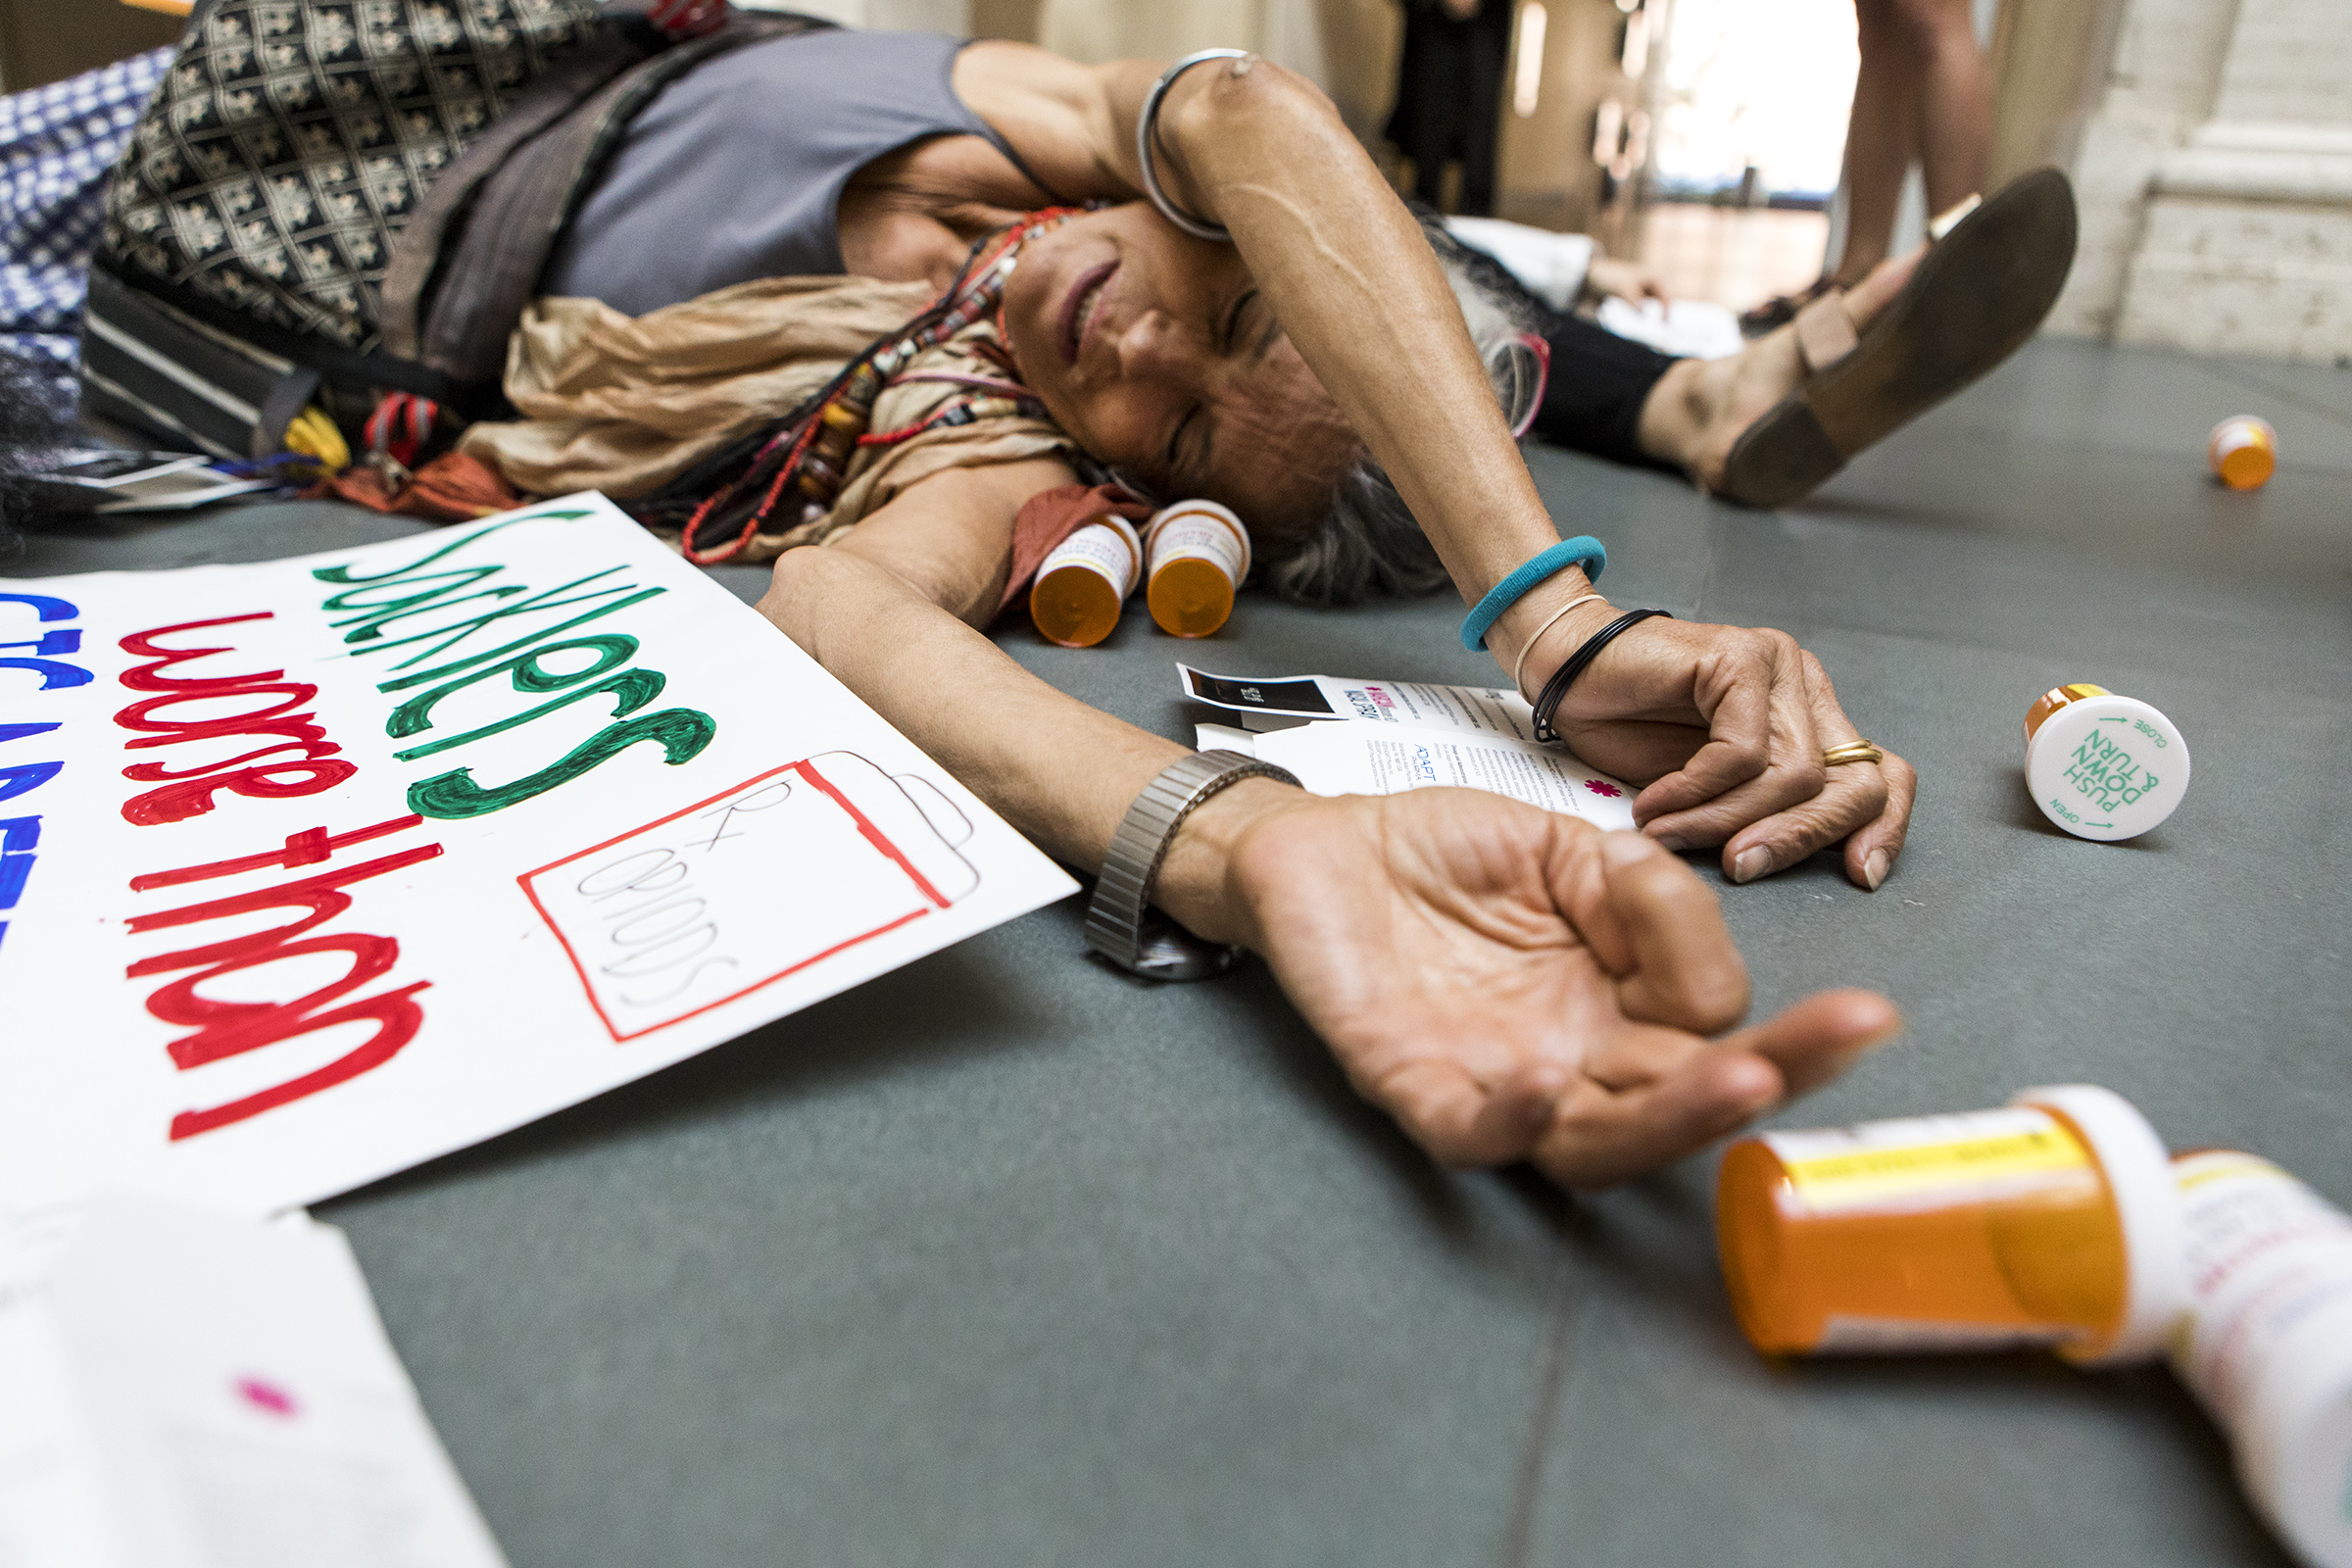 Addiction psychiatrist Annatina Miescher, of New York, lies on the floor during the die-in protesting the Sackler family and their role in perpetuating the opioid epidemic at the Harvard Art Museum on July 20, 2018.